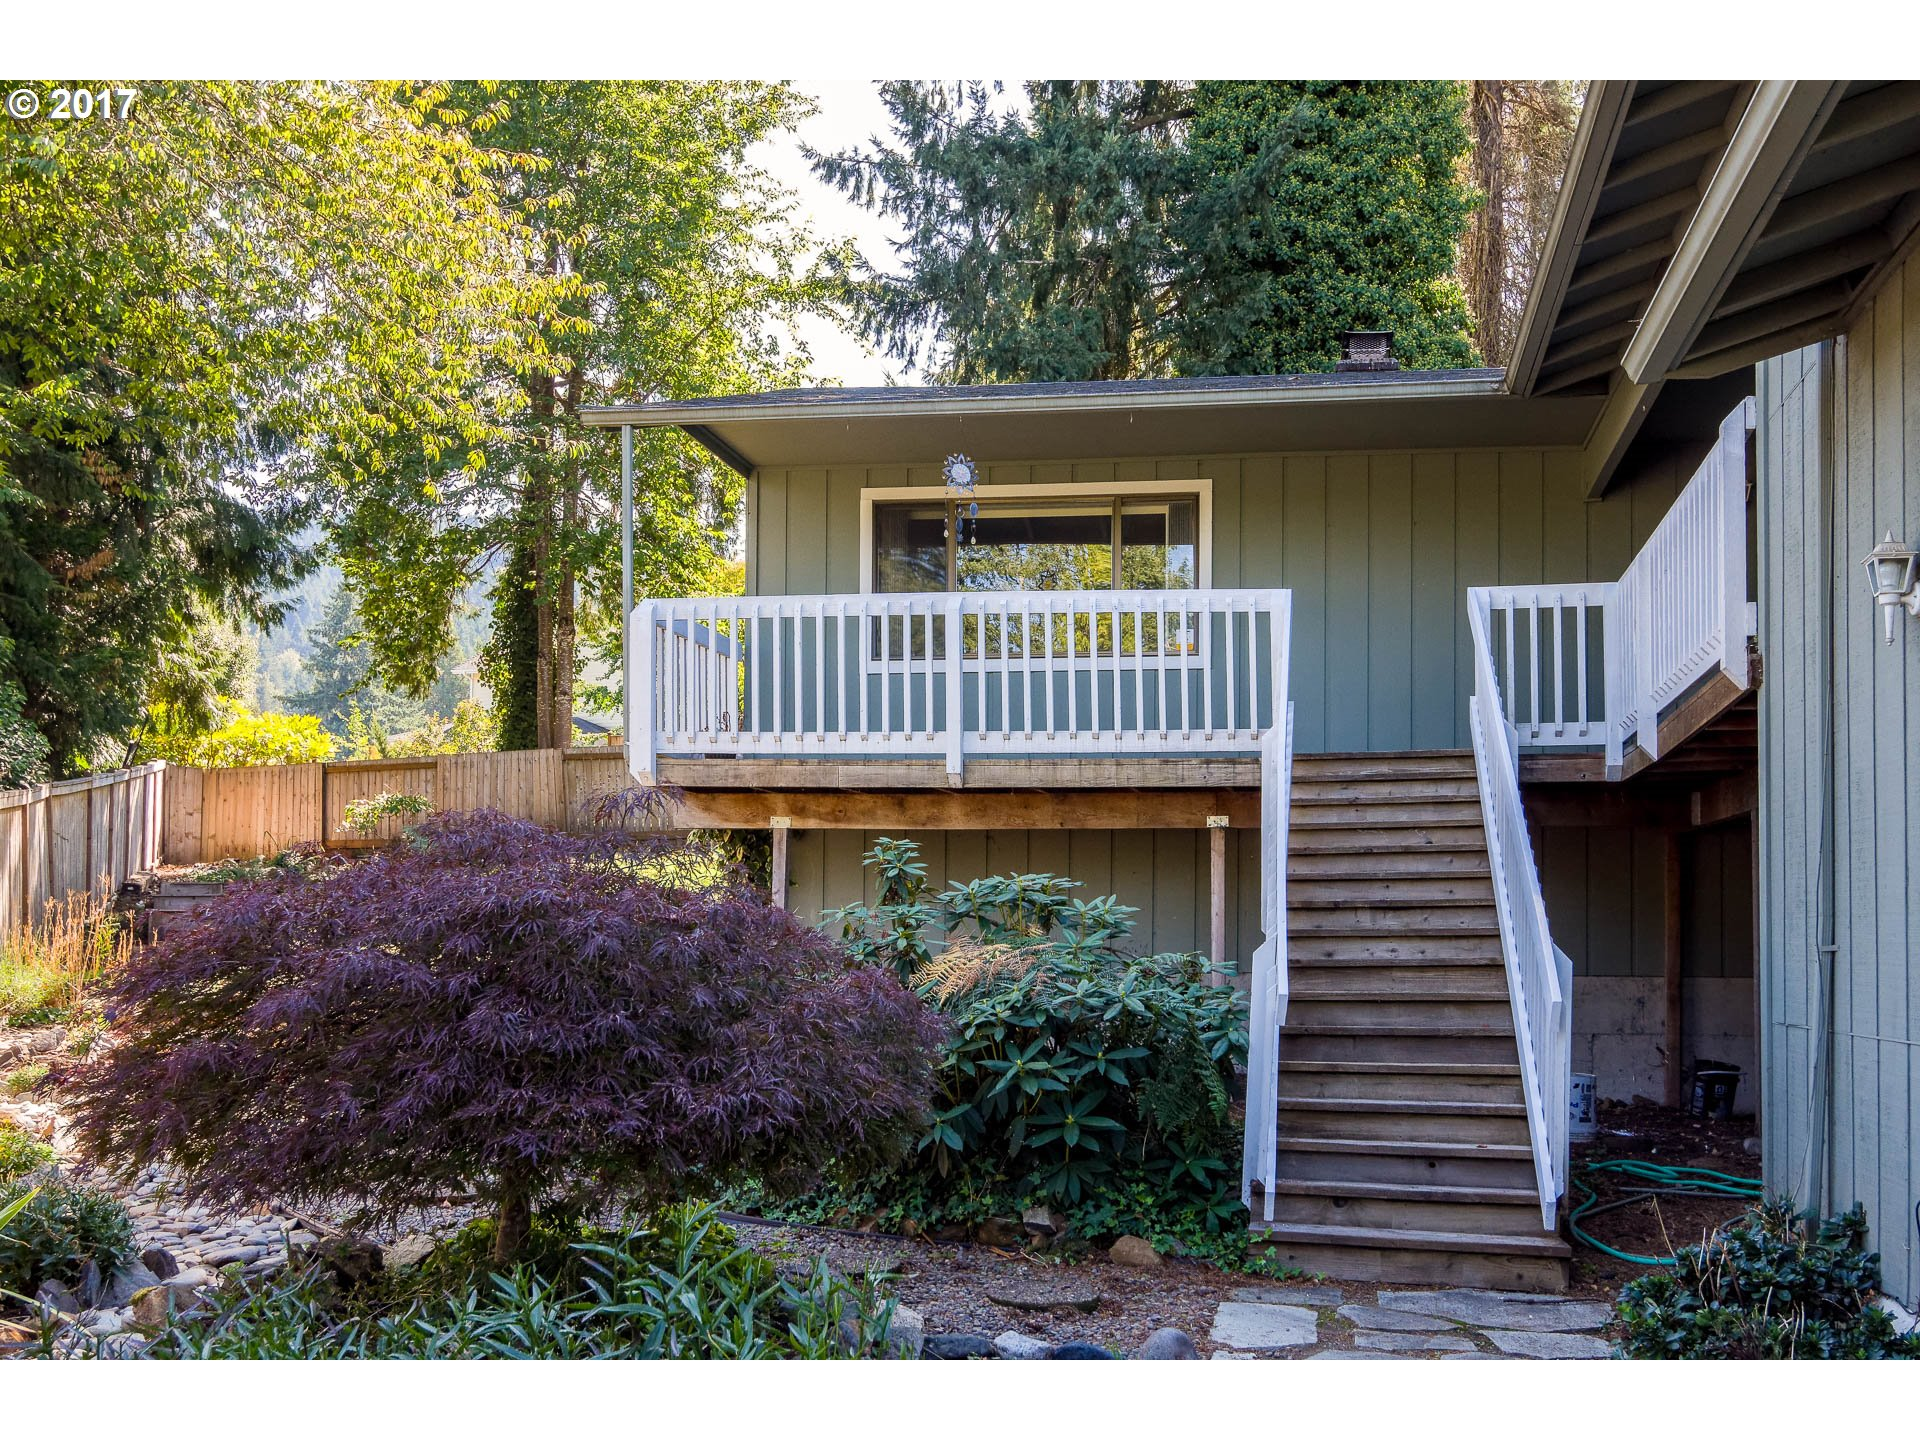 353 S 68TH PL, Springfield OR 97478